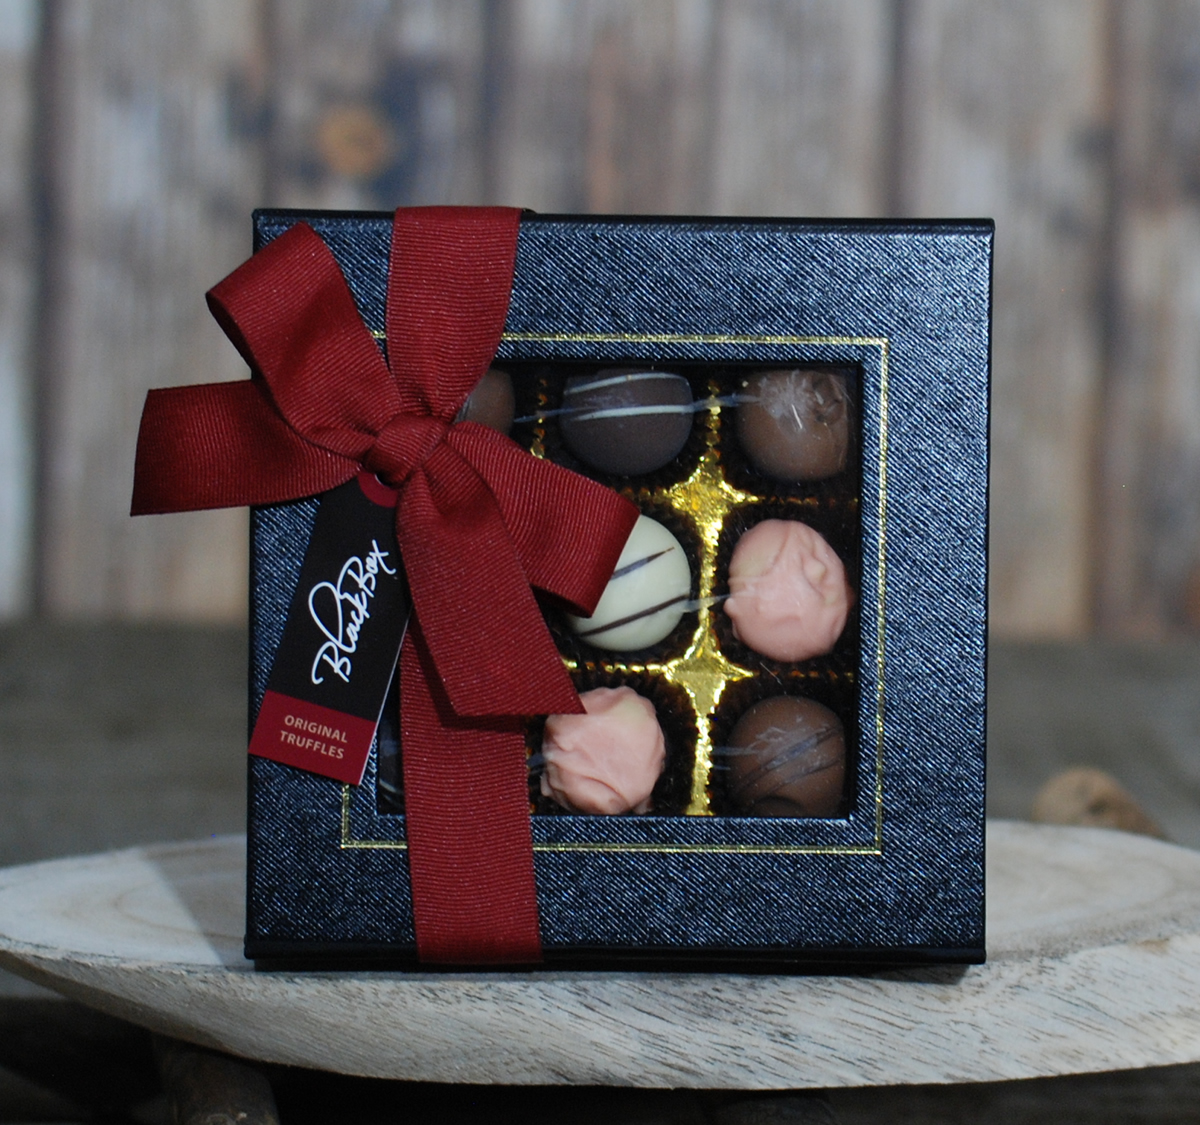 Chocolate Box – Black Box- Alcohol Flavor – Small – 9pcs